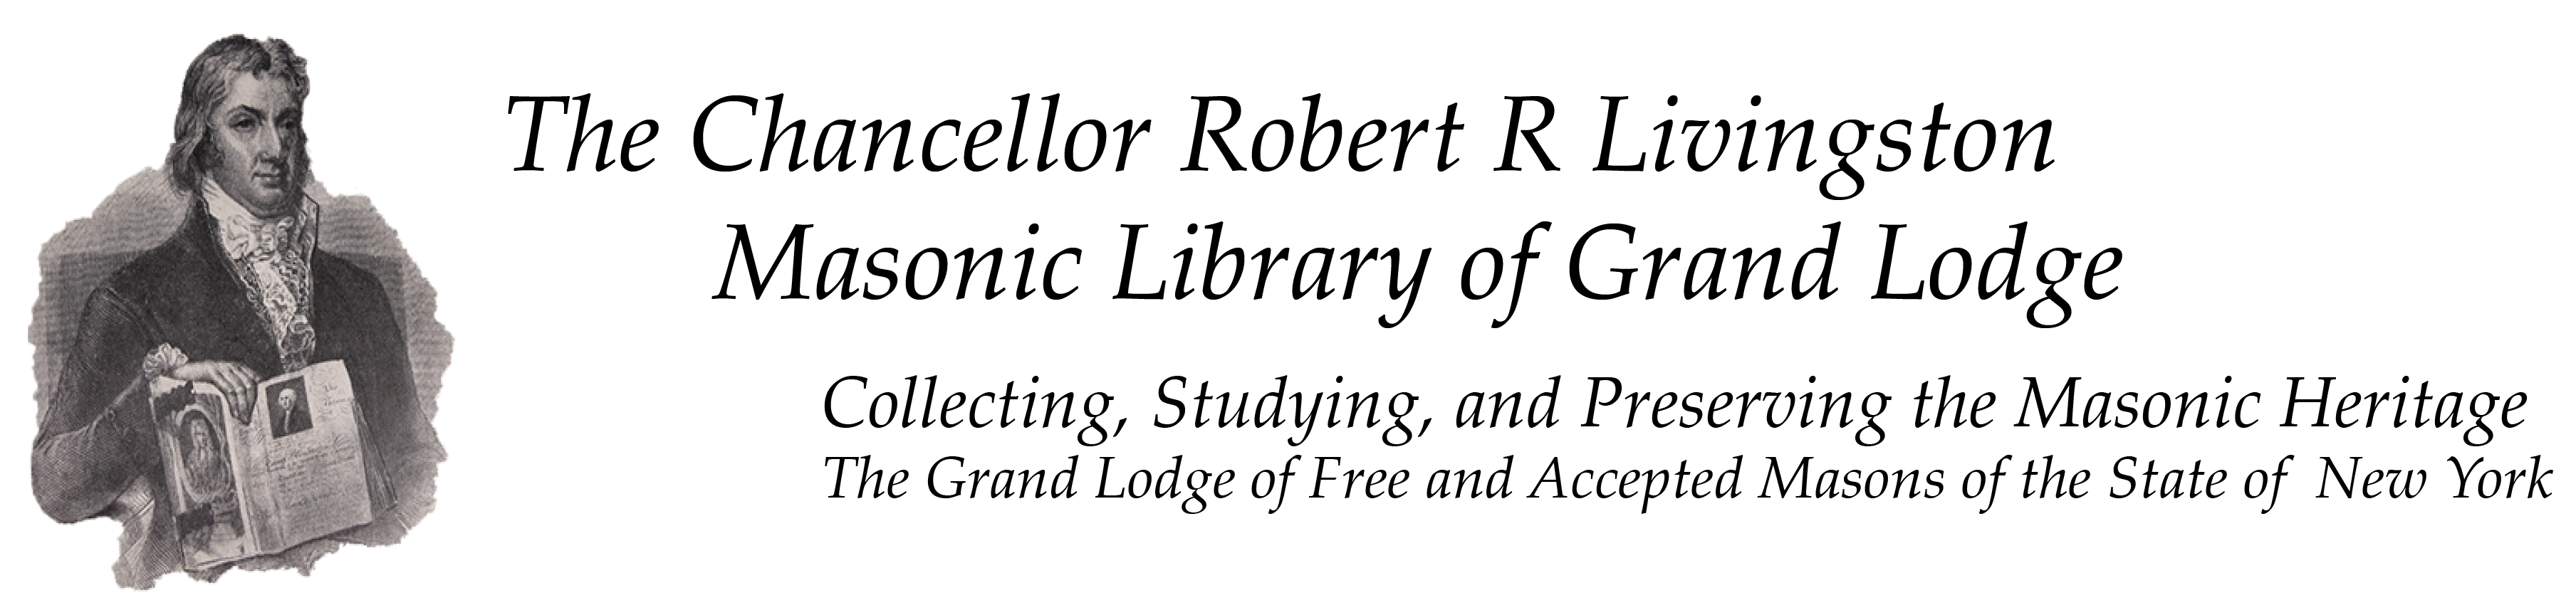 Chancellor Robert R Livingston Masonic Library